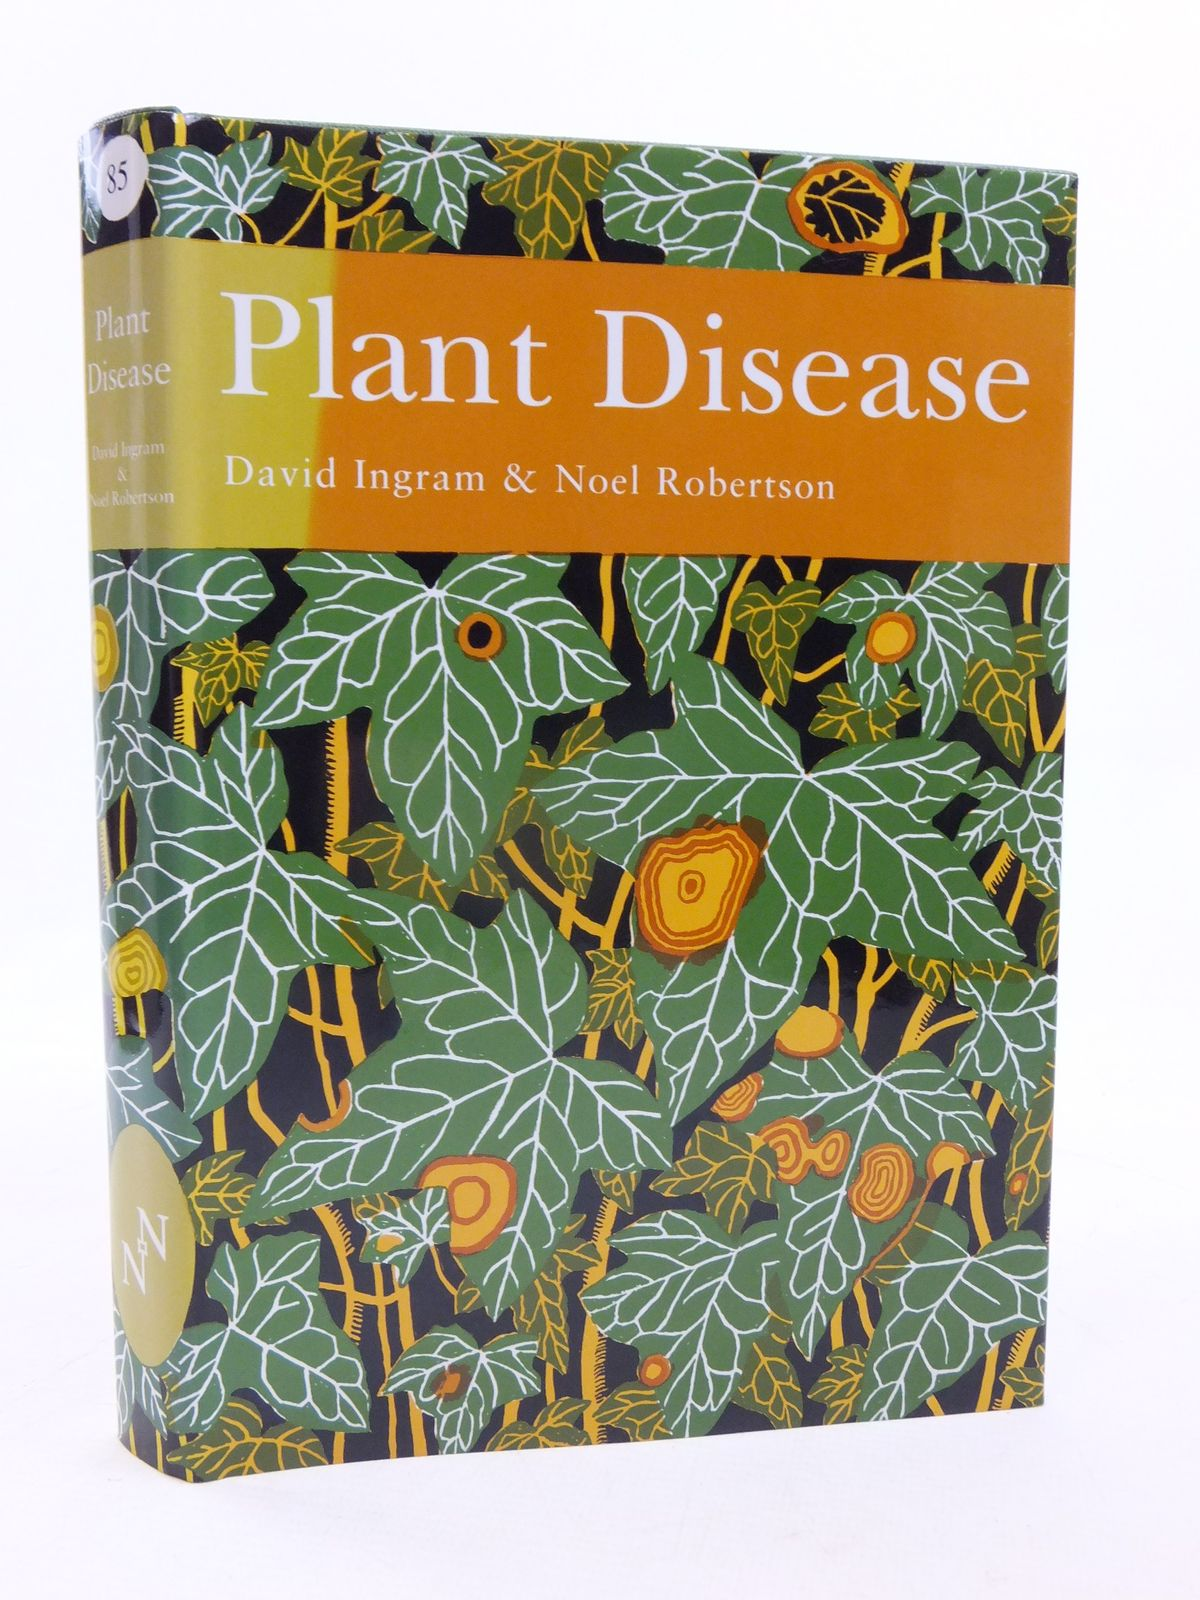 Photo of PLANT DISEASE A NATURAL HISTORY (NN 85)